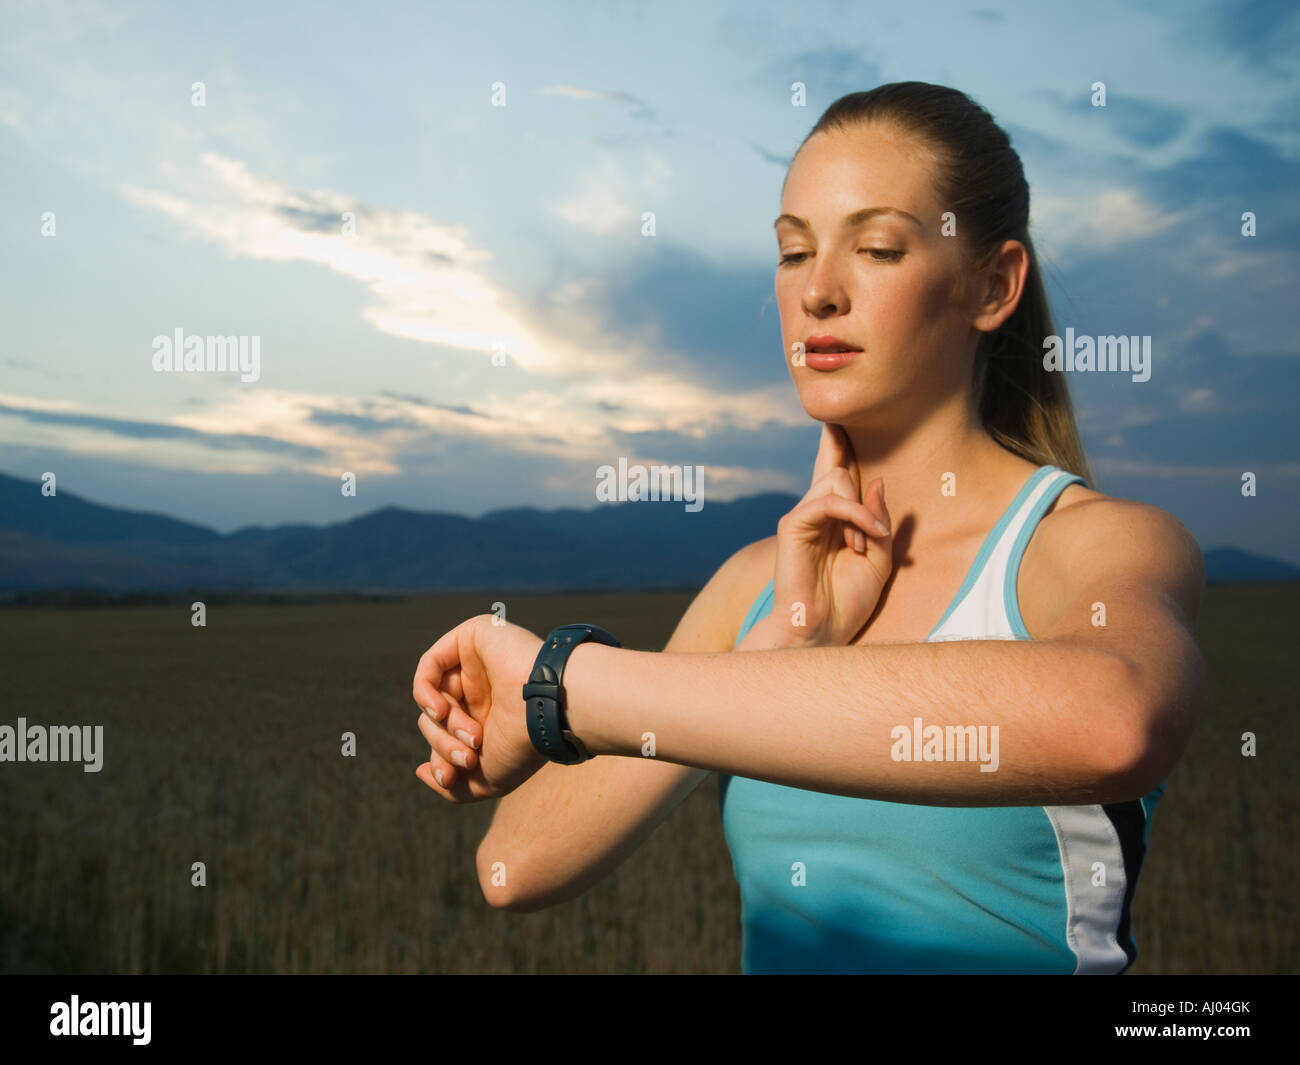 Woman in athletic gear checking pulse - Stock Image